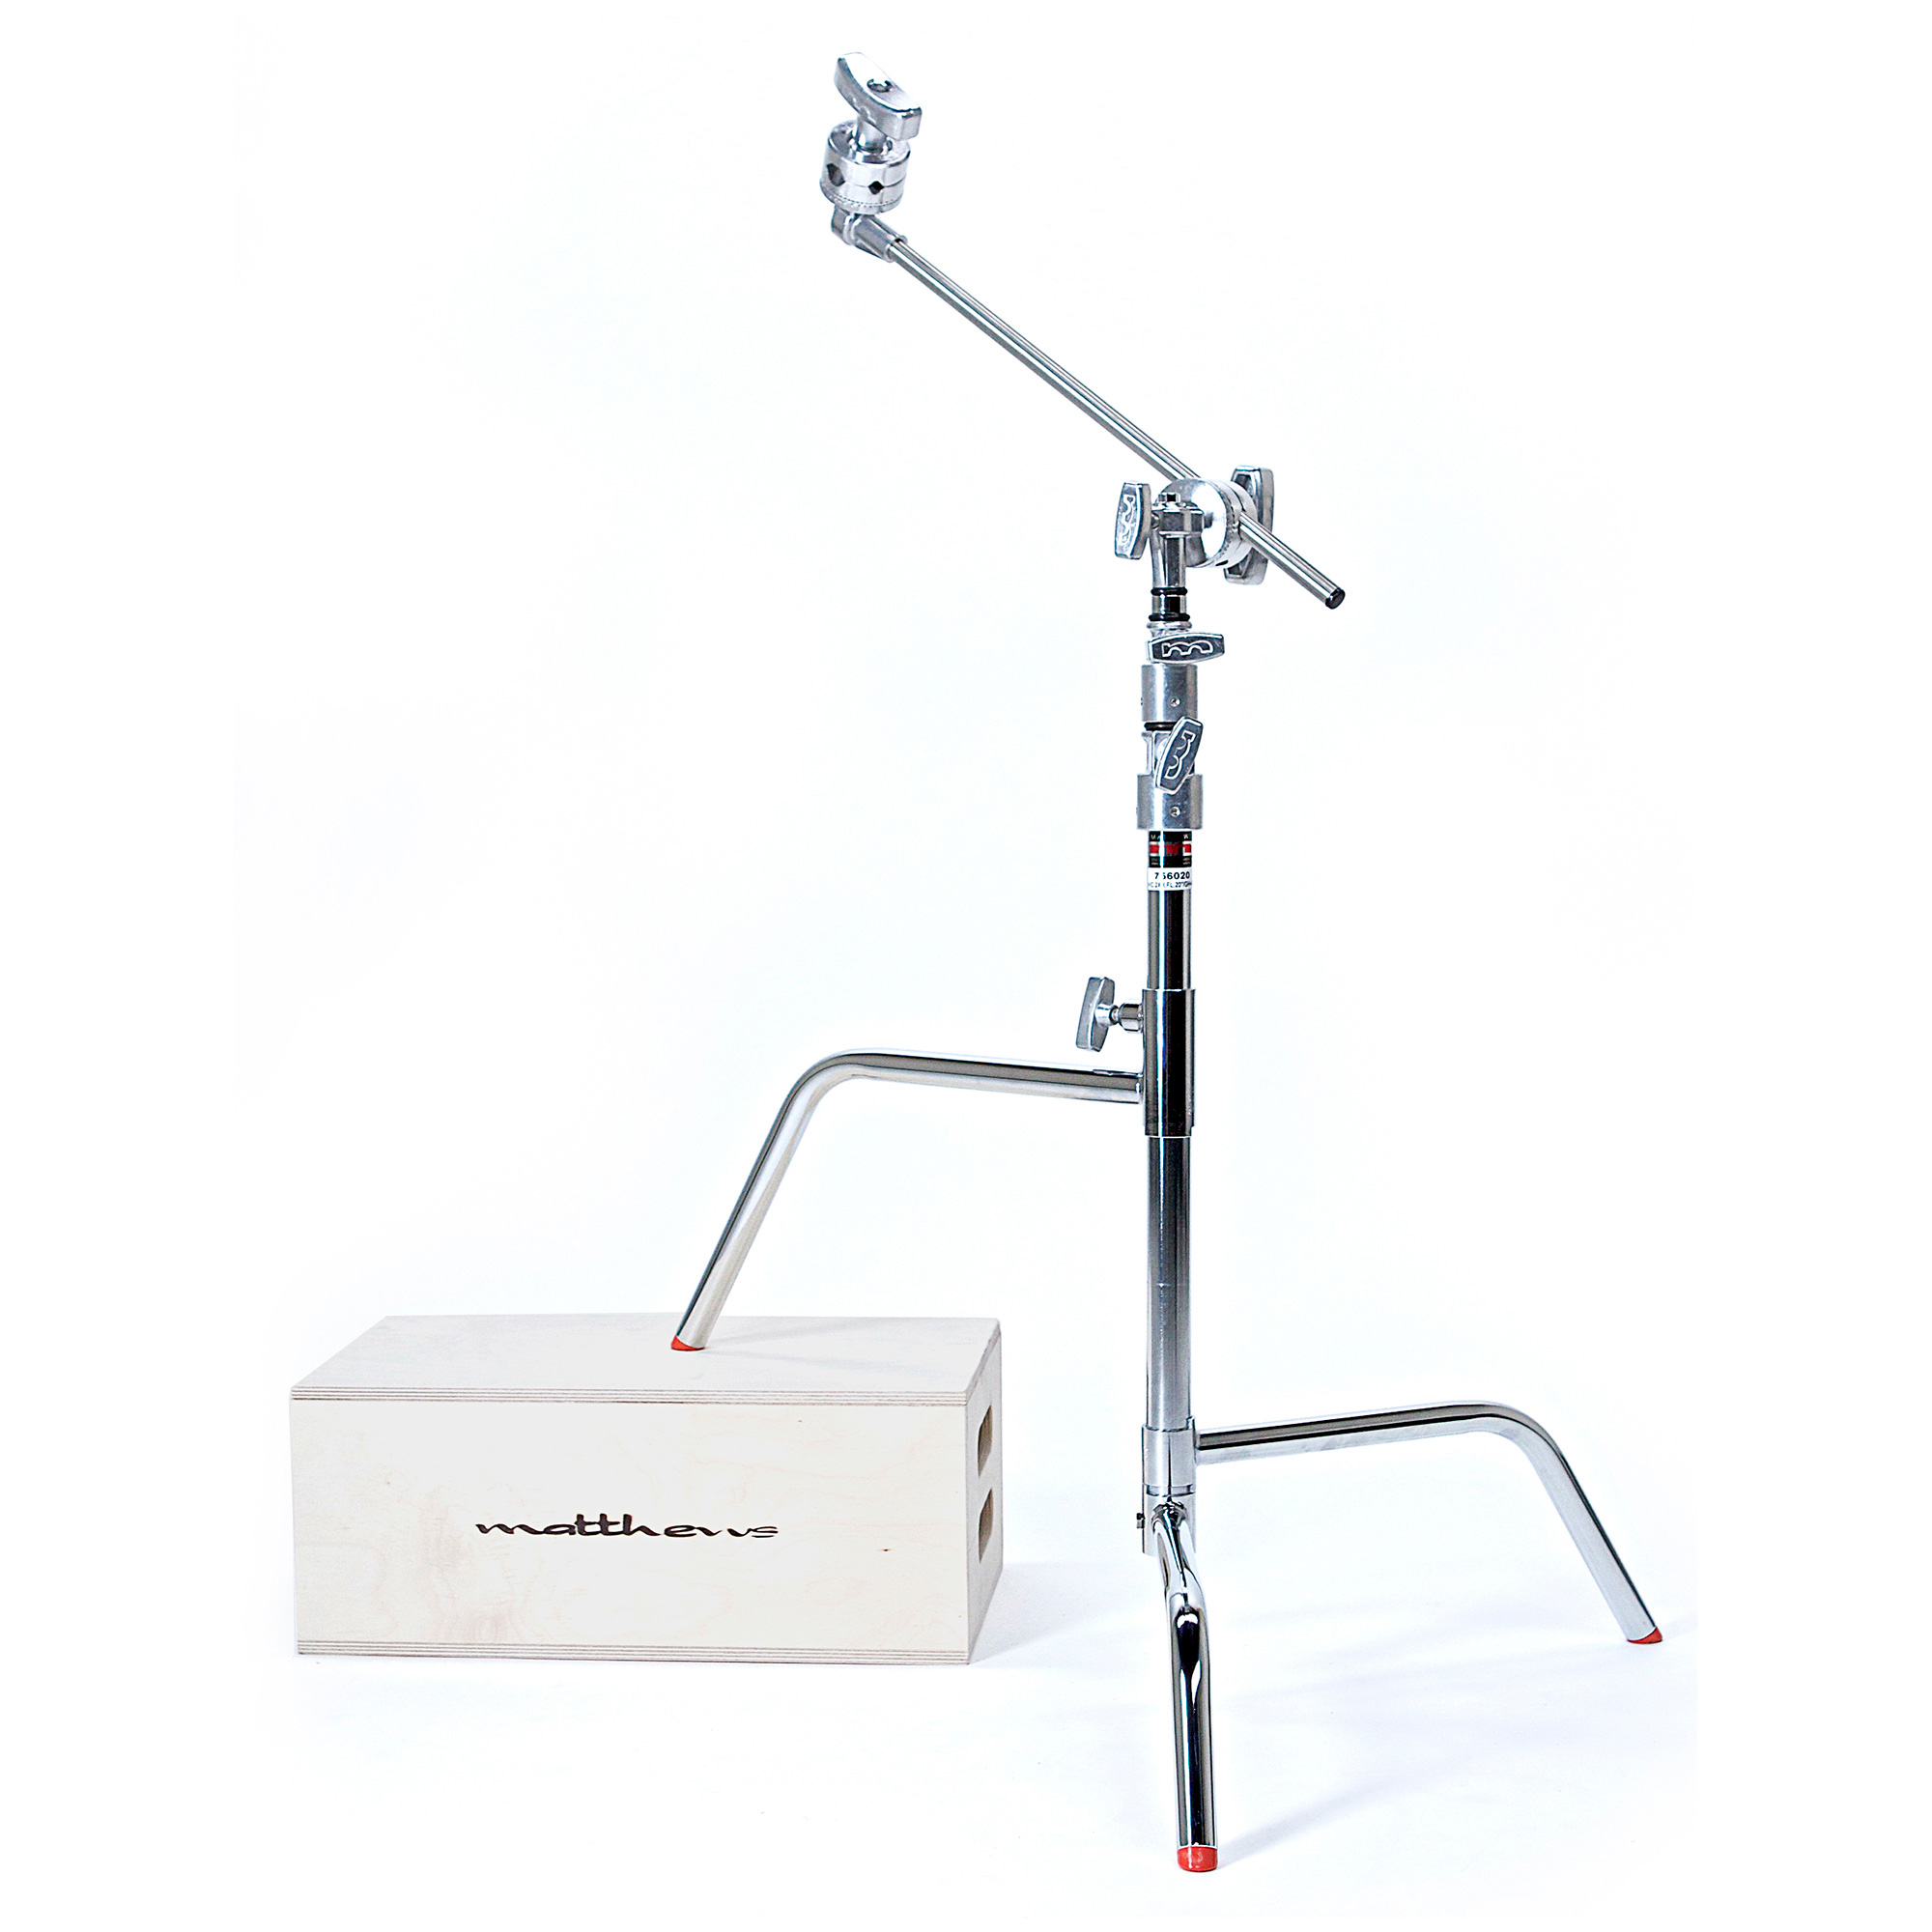 20in C Stand with Sliding Leg Grip Head and Arm MSE-756020